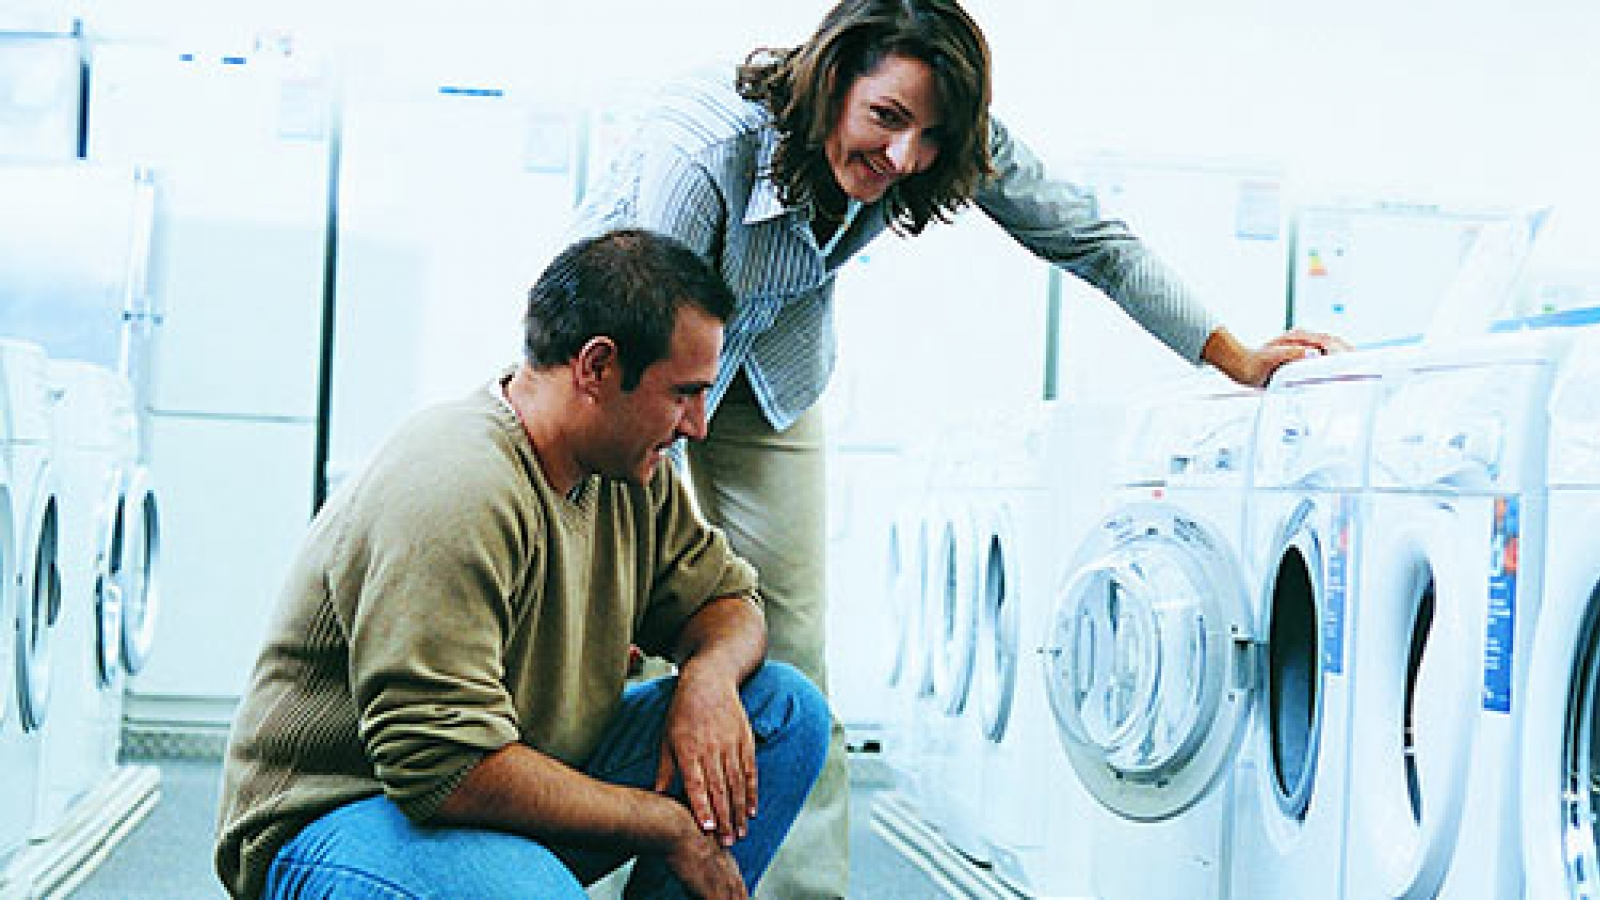 Couple looking at clothes washer in appliance store